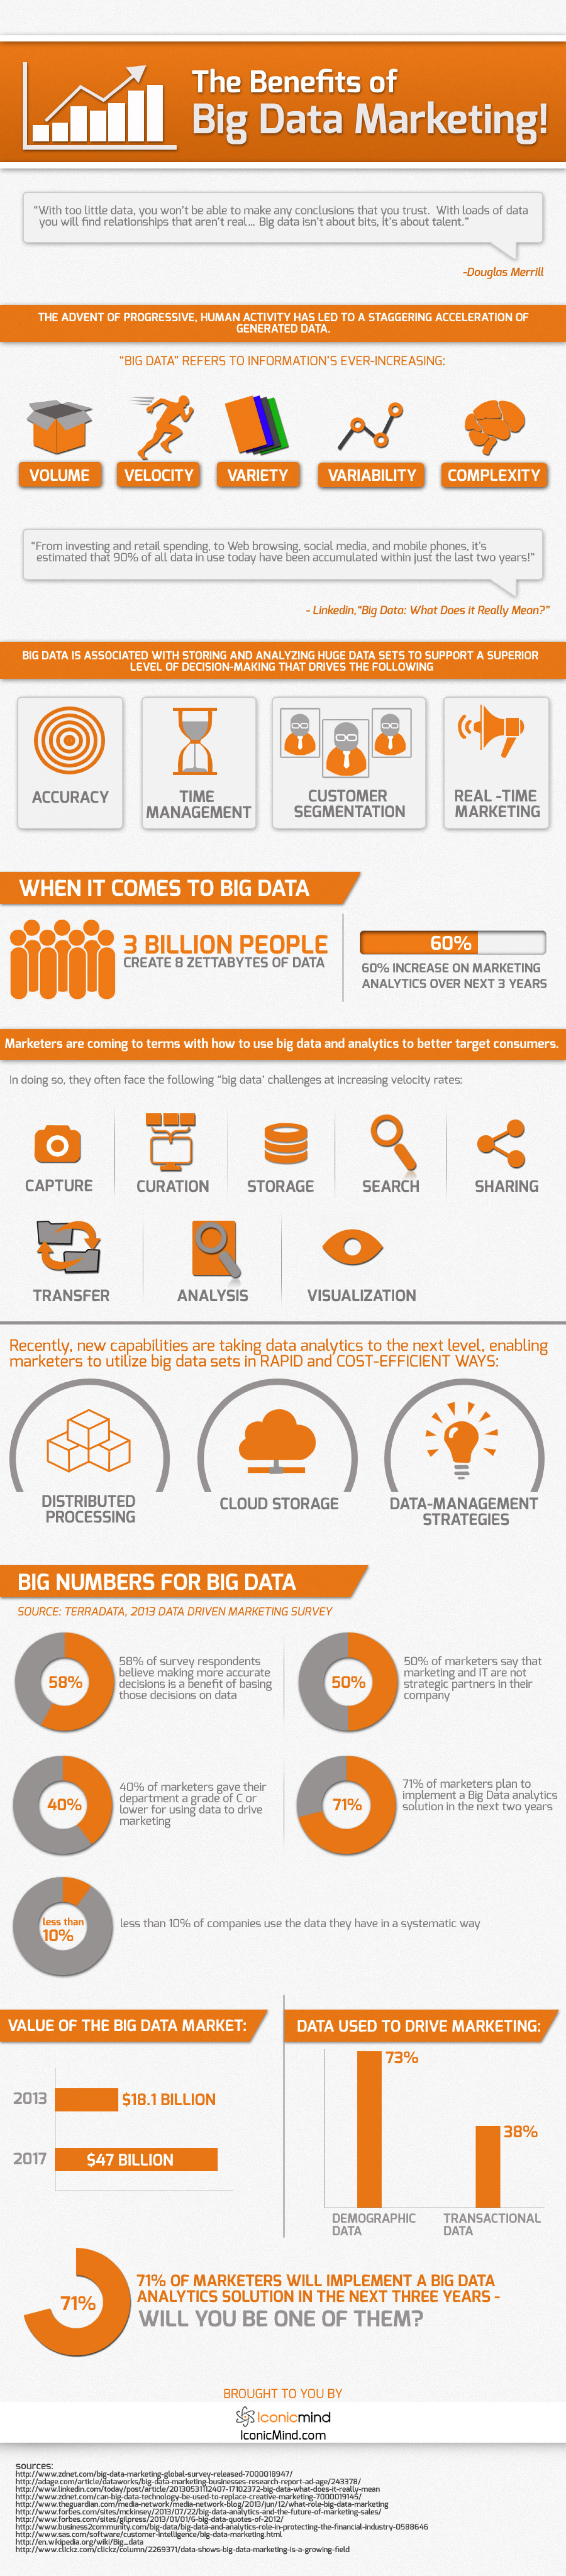 The Benefits of Big Data Marketing! Infographic